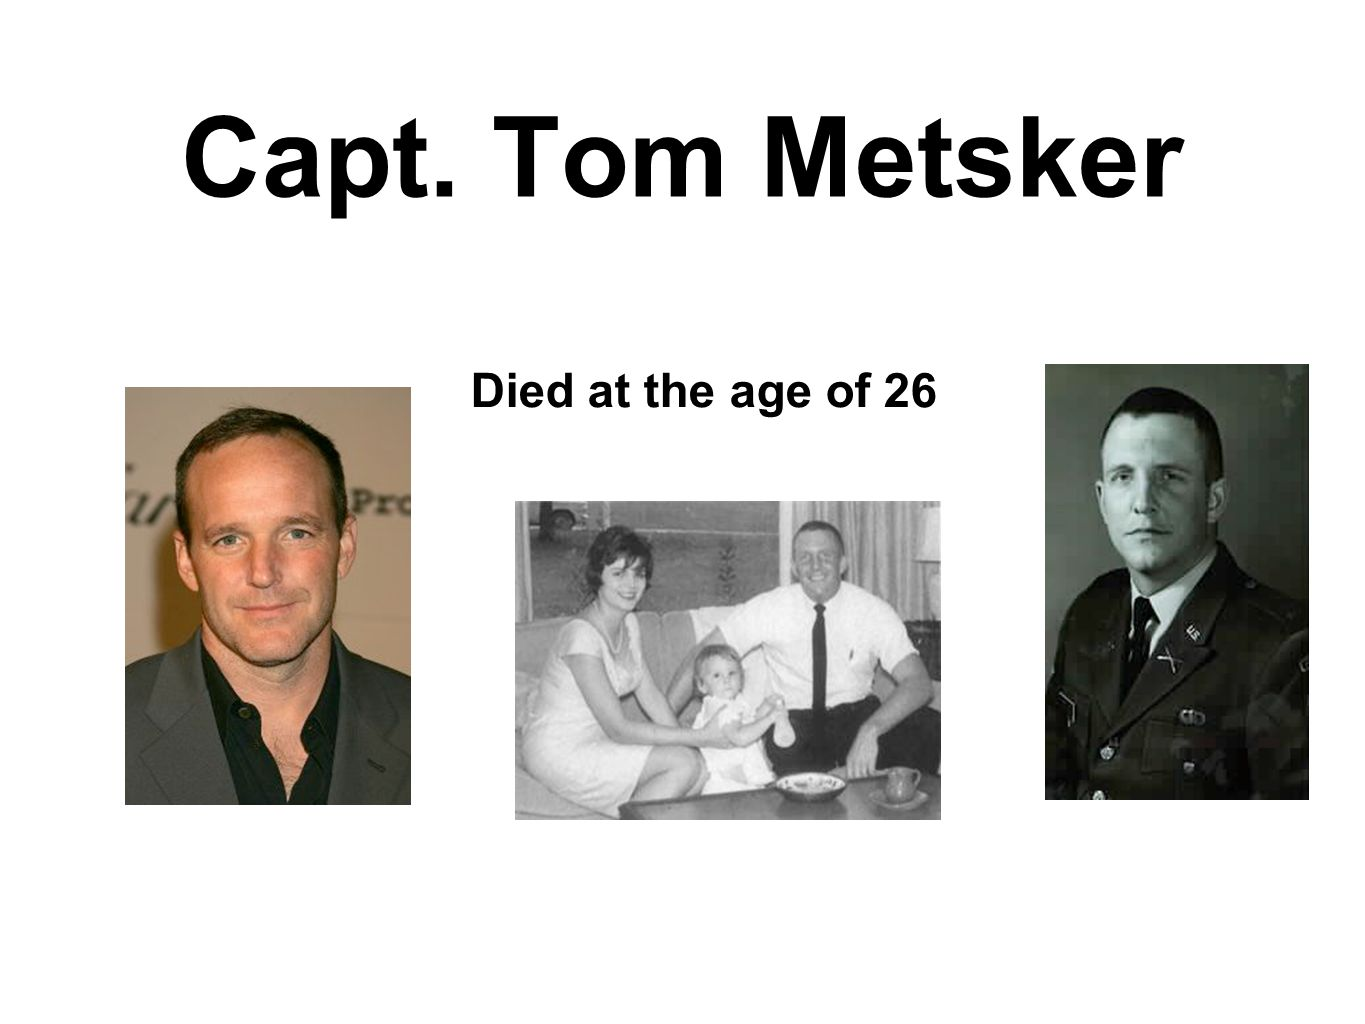 Capt. Tom Metsker Died at the age of 26